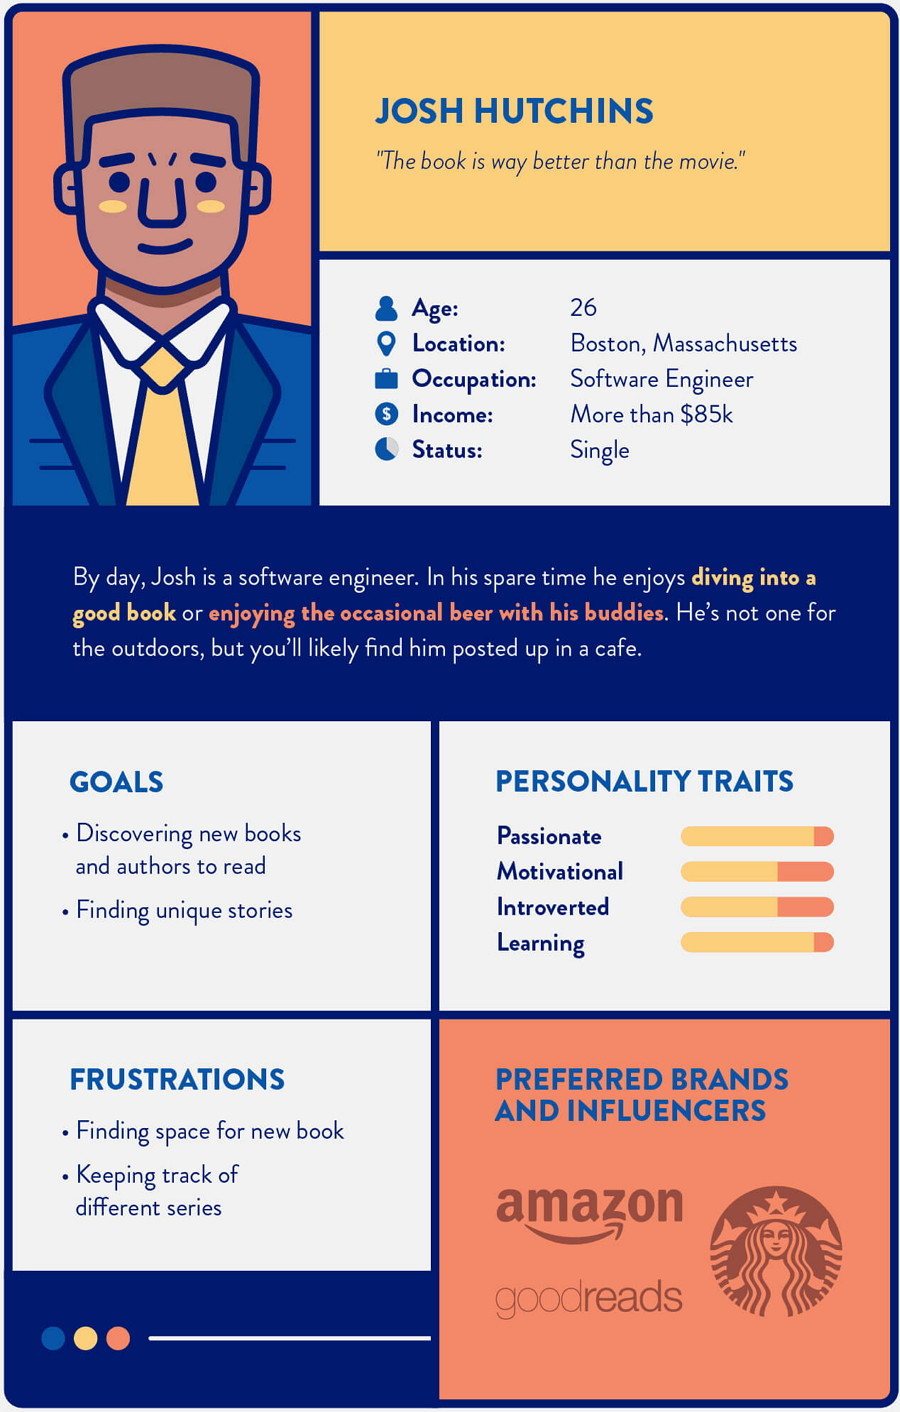 Use Illustrations and Visuals to Make Your Personas Stand Out